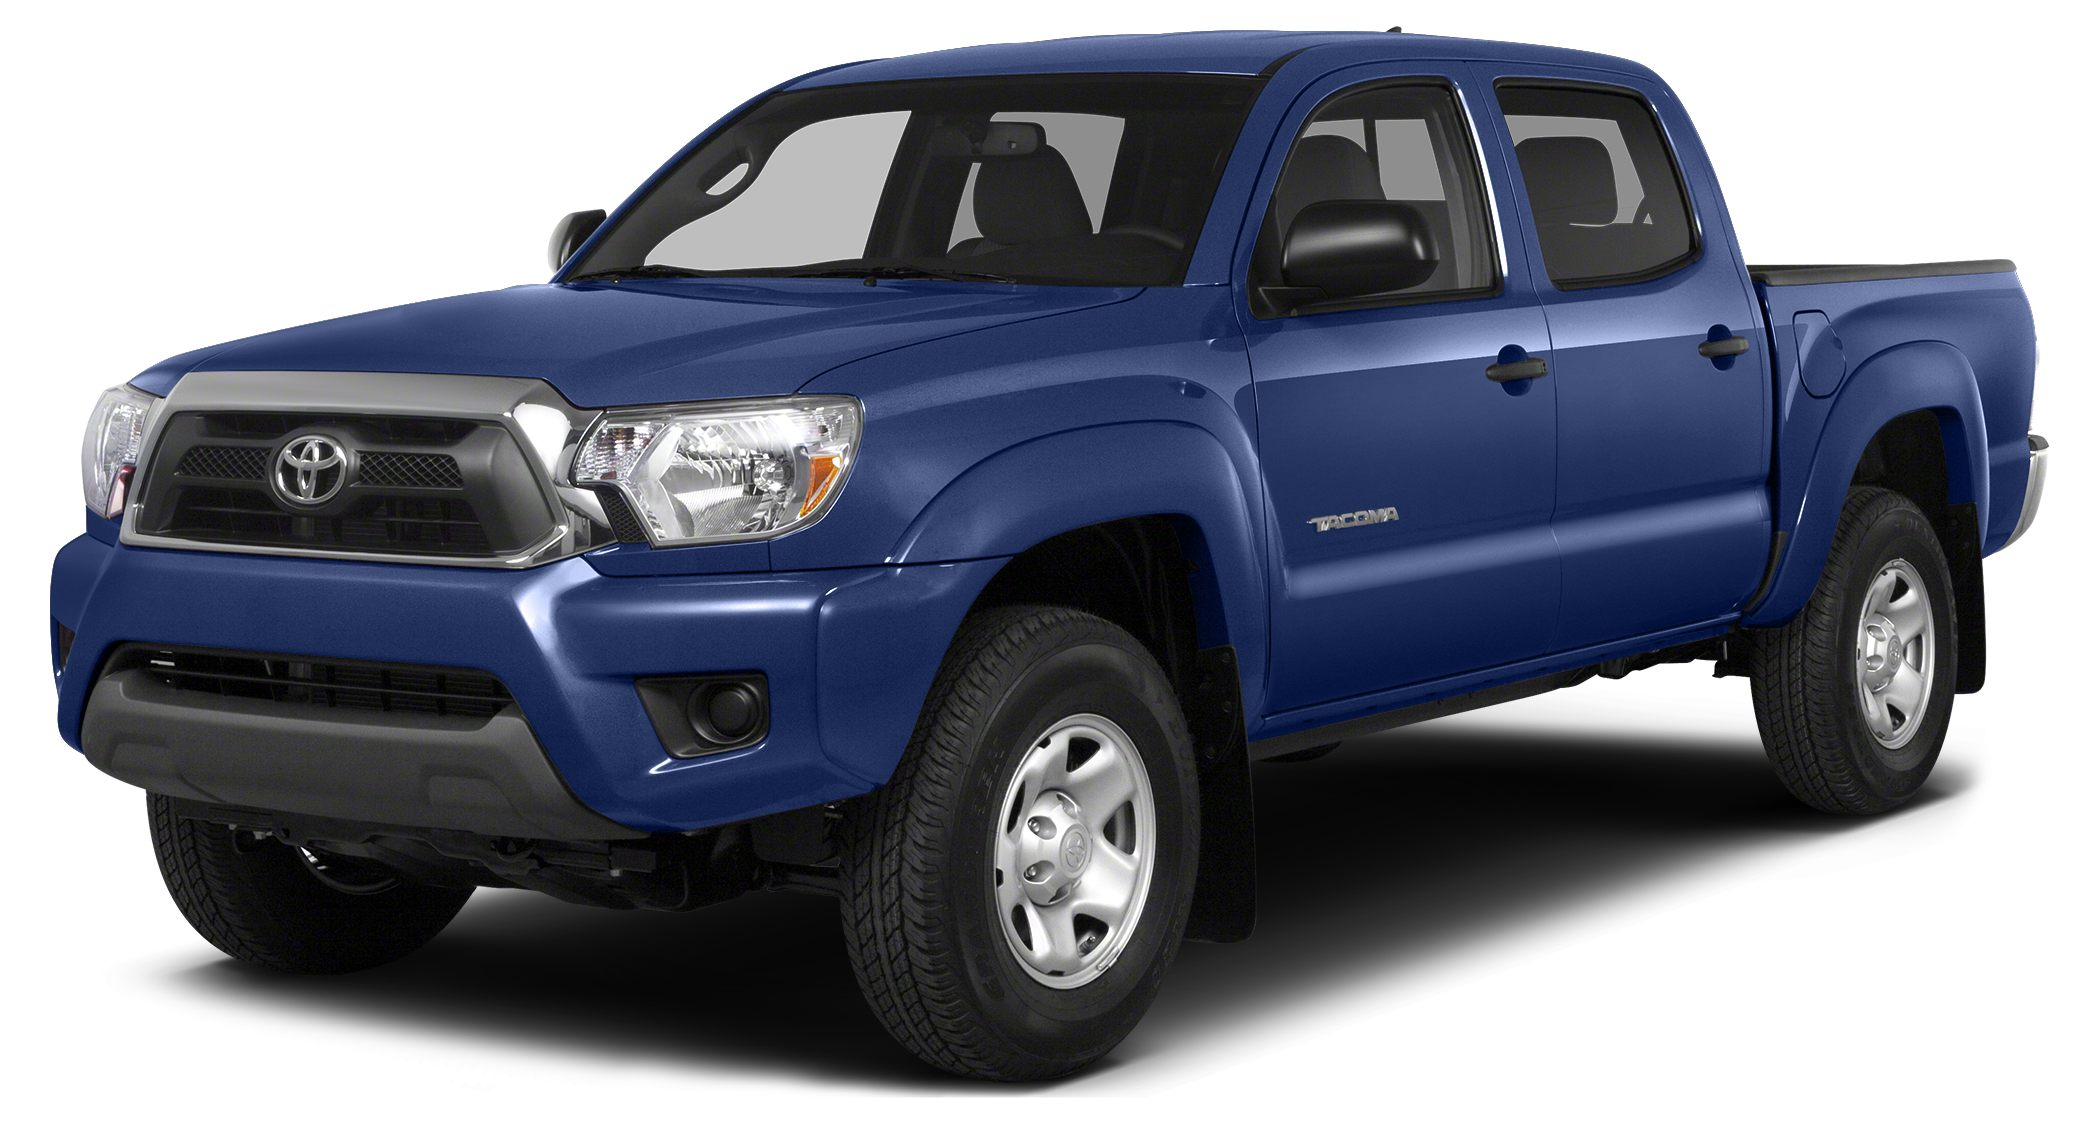 2015 Toyota Tacoma Base Get ready to have some serious fun with the most adrenaline-inducing lineu